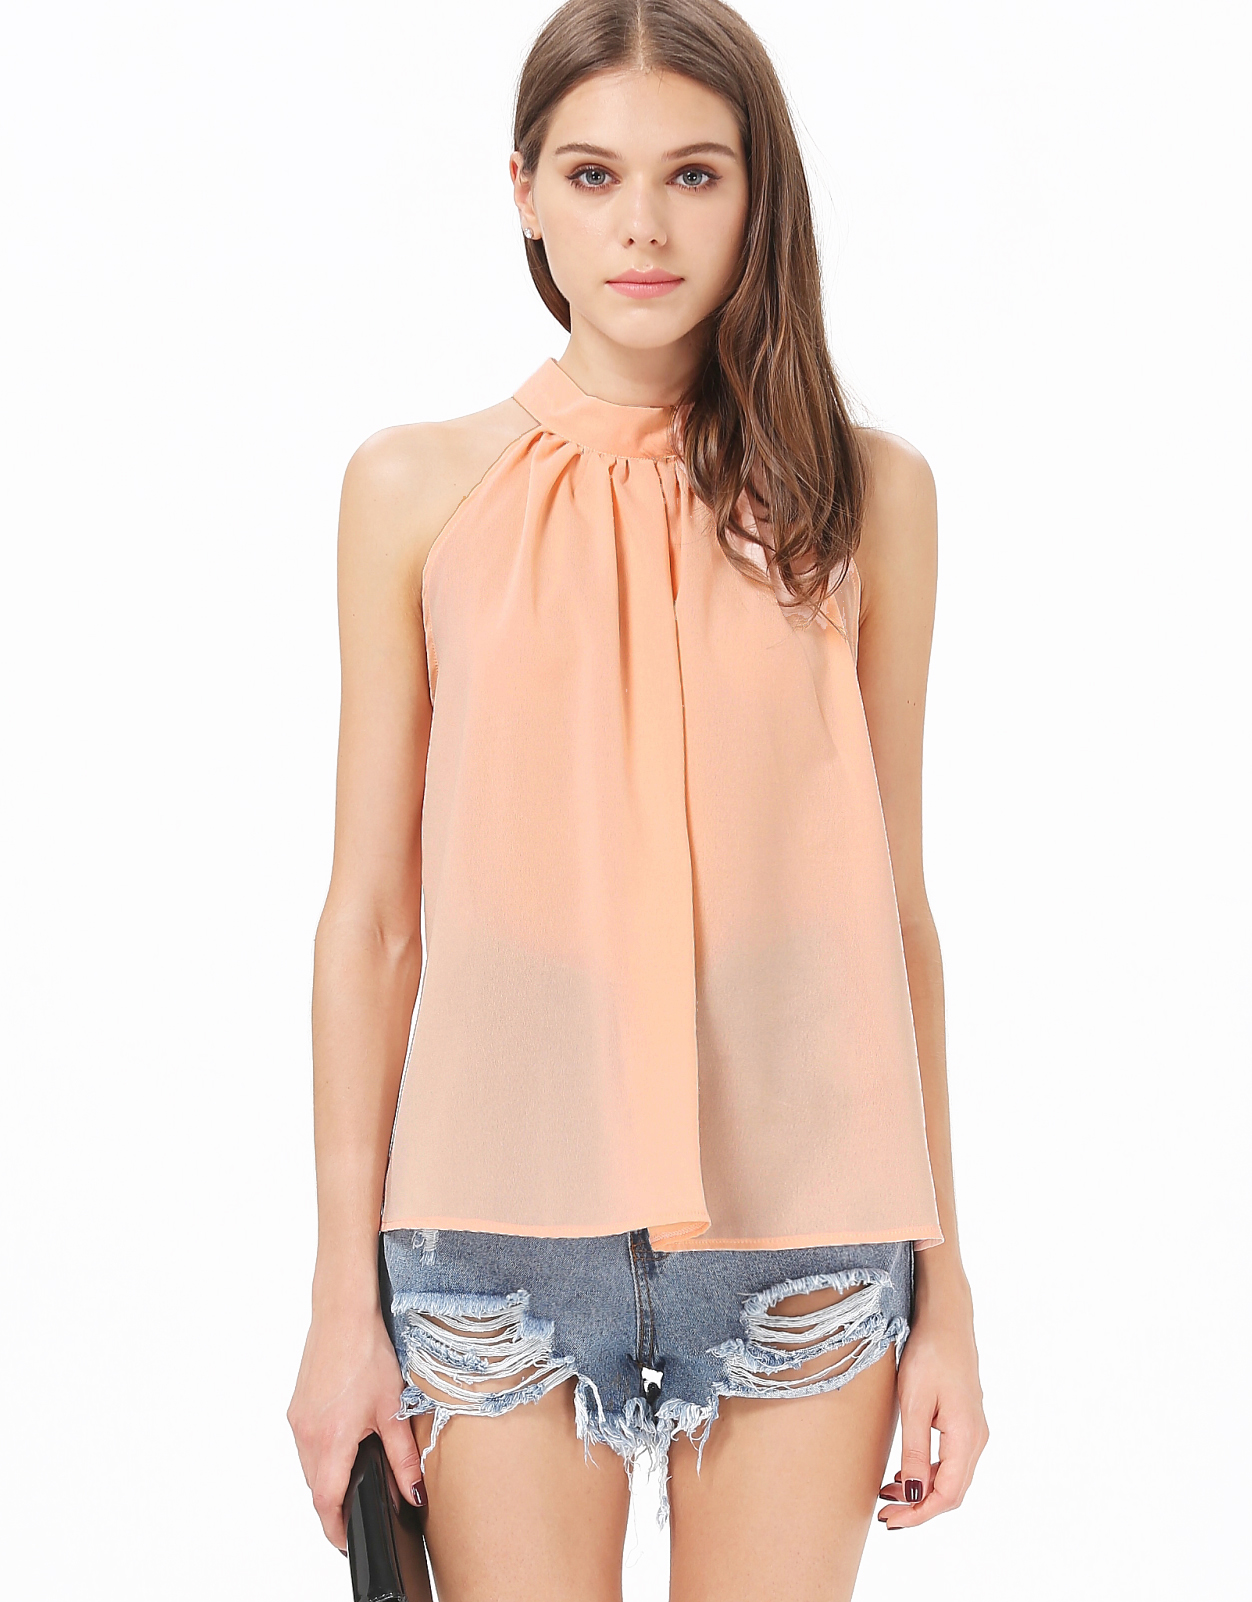 Pink Stand Collar Off the Shoulder Chiffon Vest - Sheinside.com